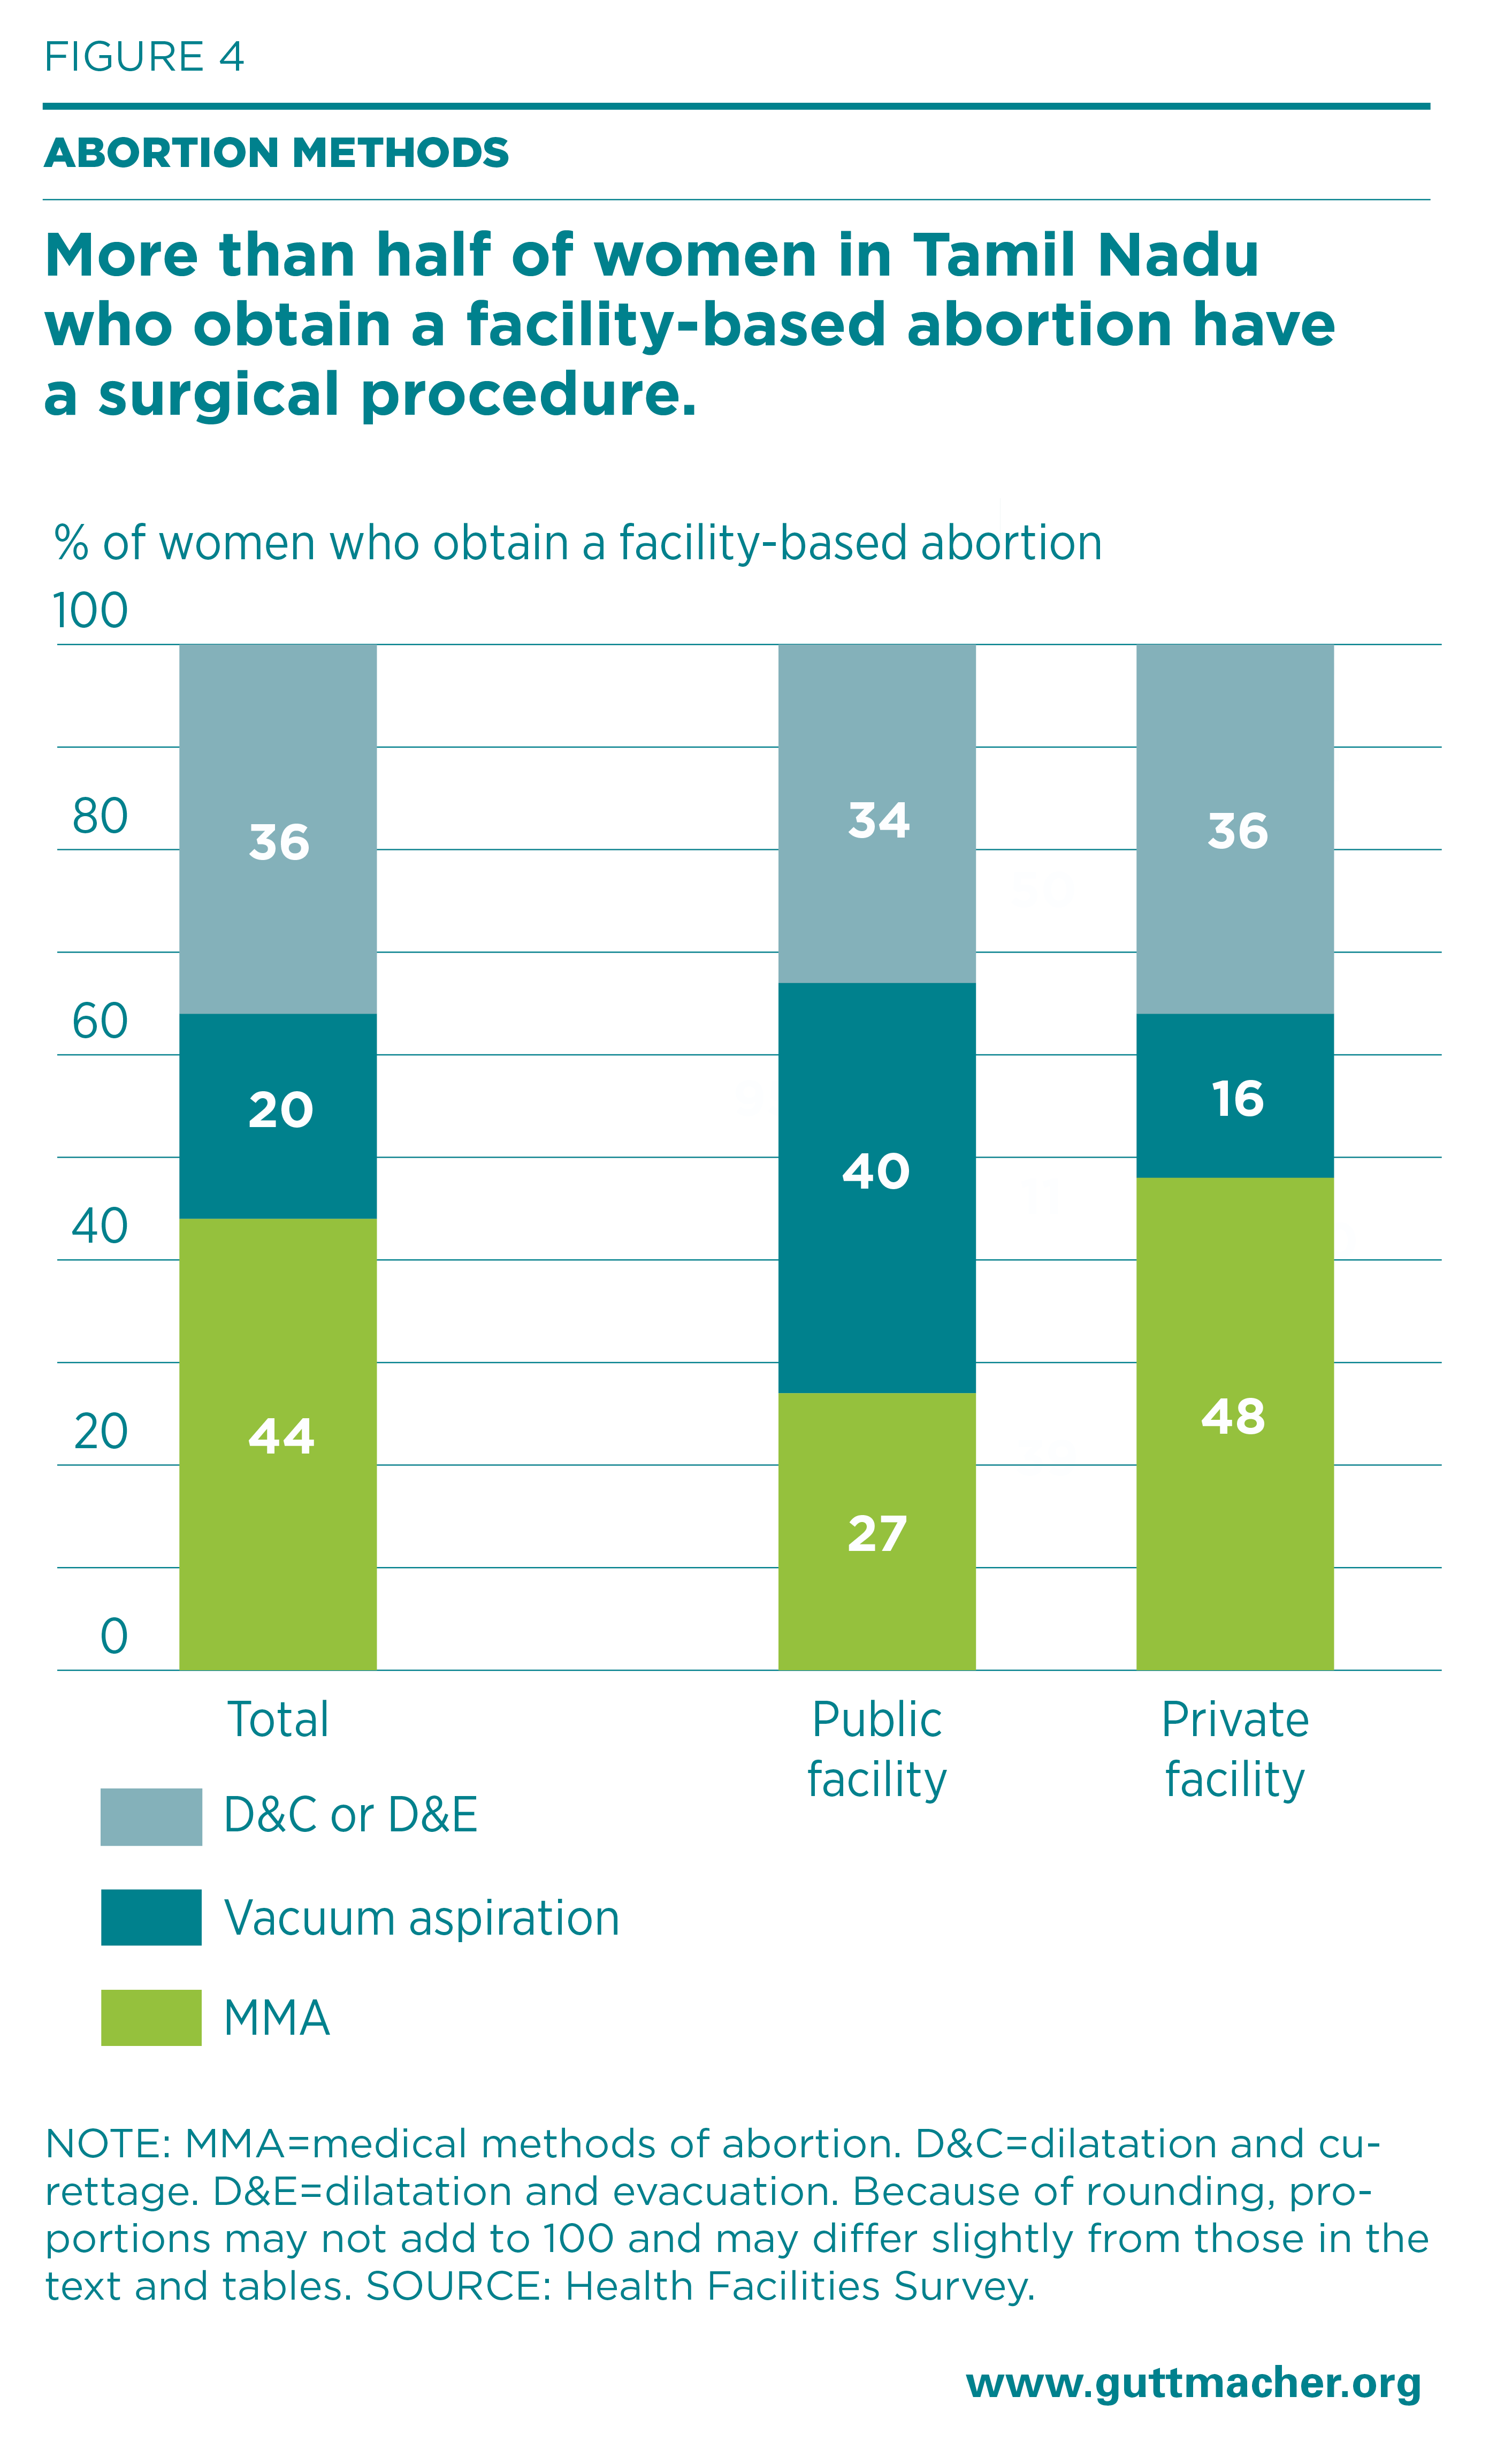 Unintended Pregnancy, Abortion and Postabortion Care in